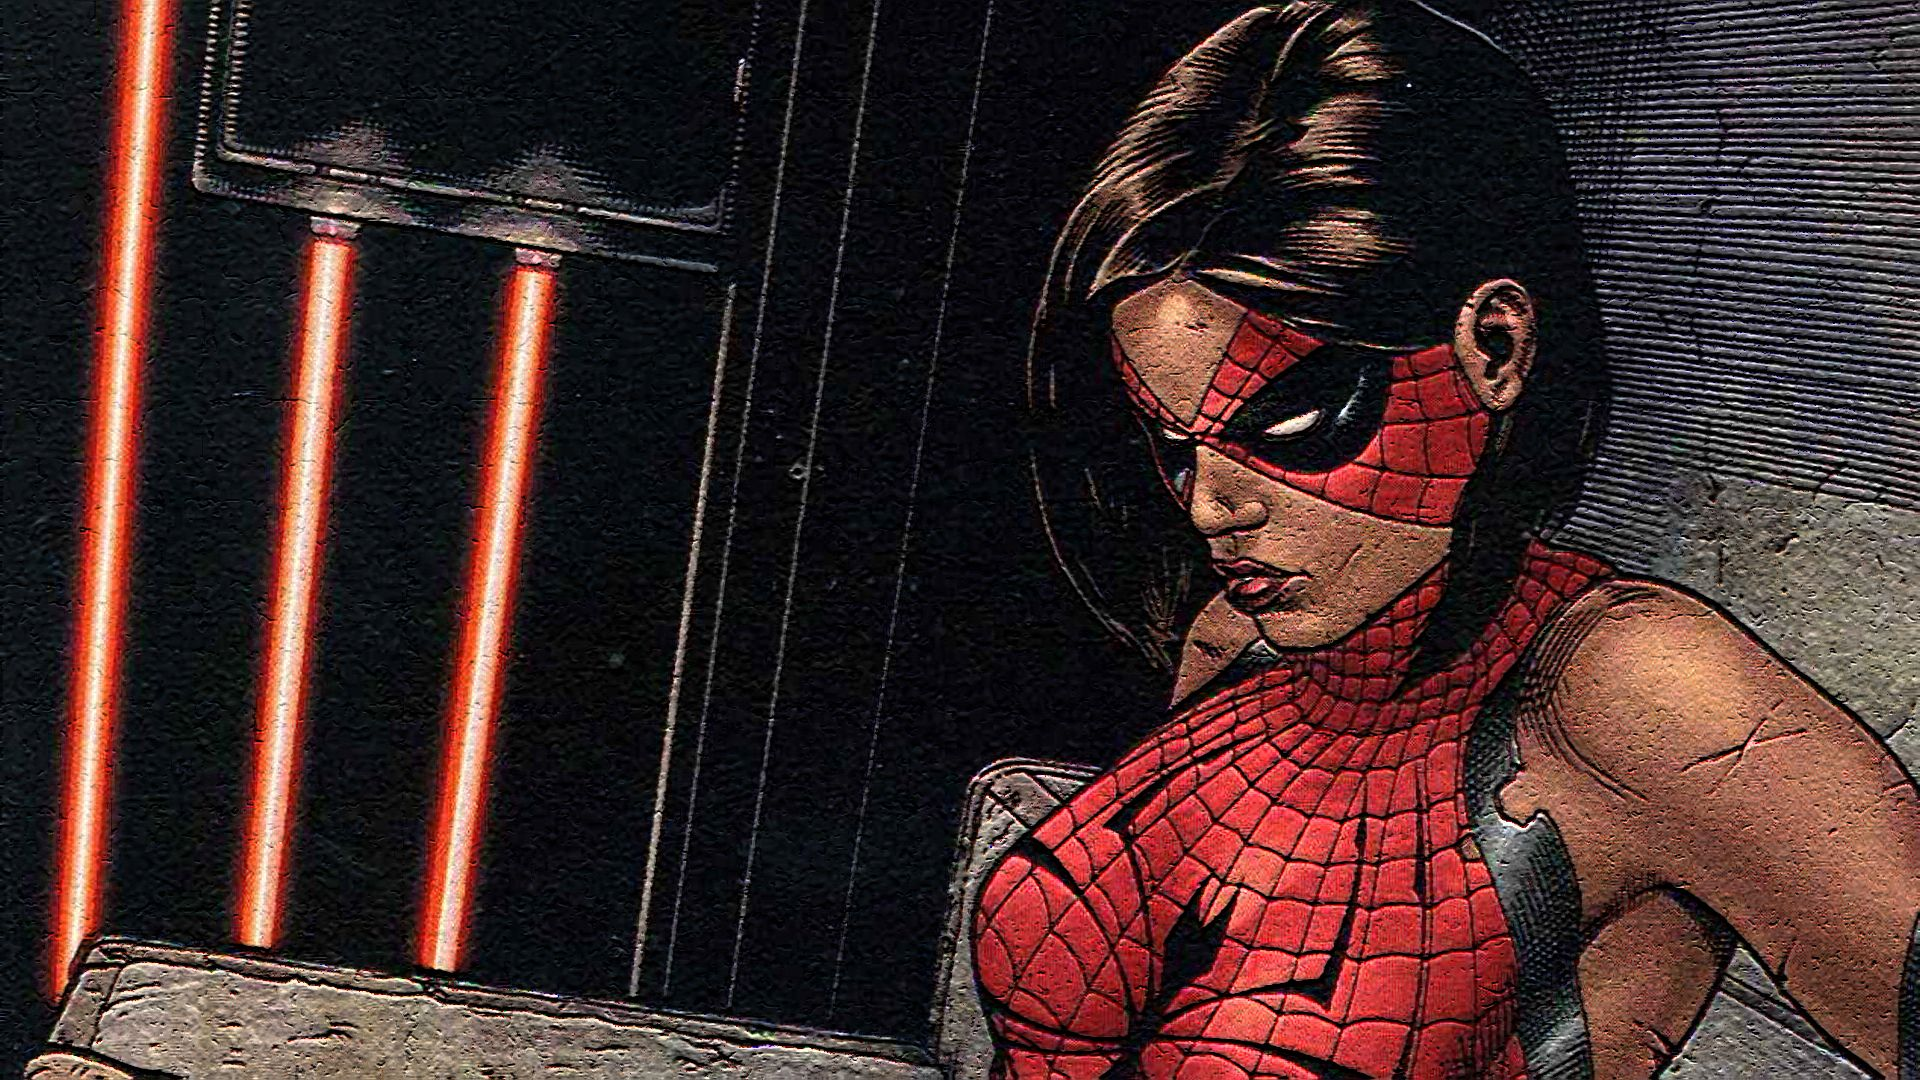 1920x1080 Spider-Girl HD Wallpaper | Background Image | 1920x1080 | ID ...